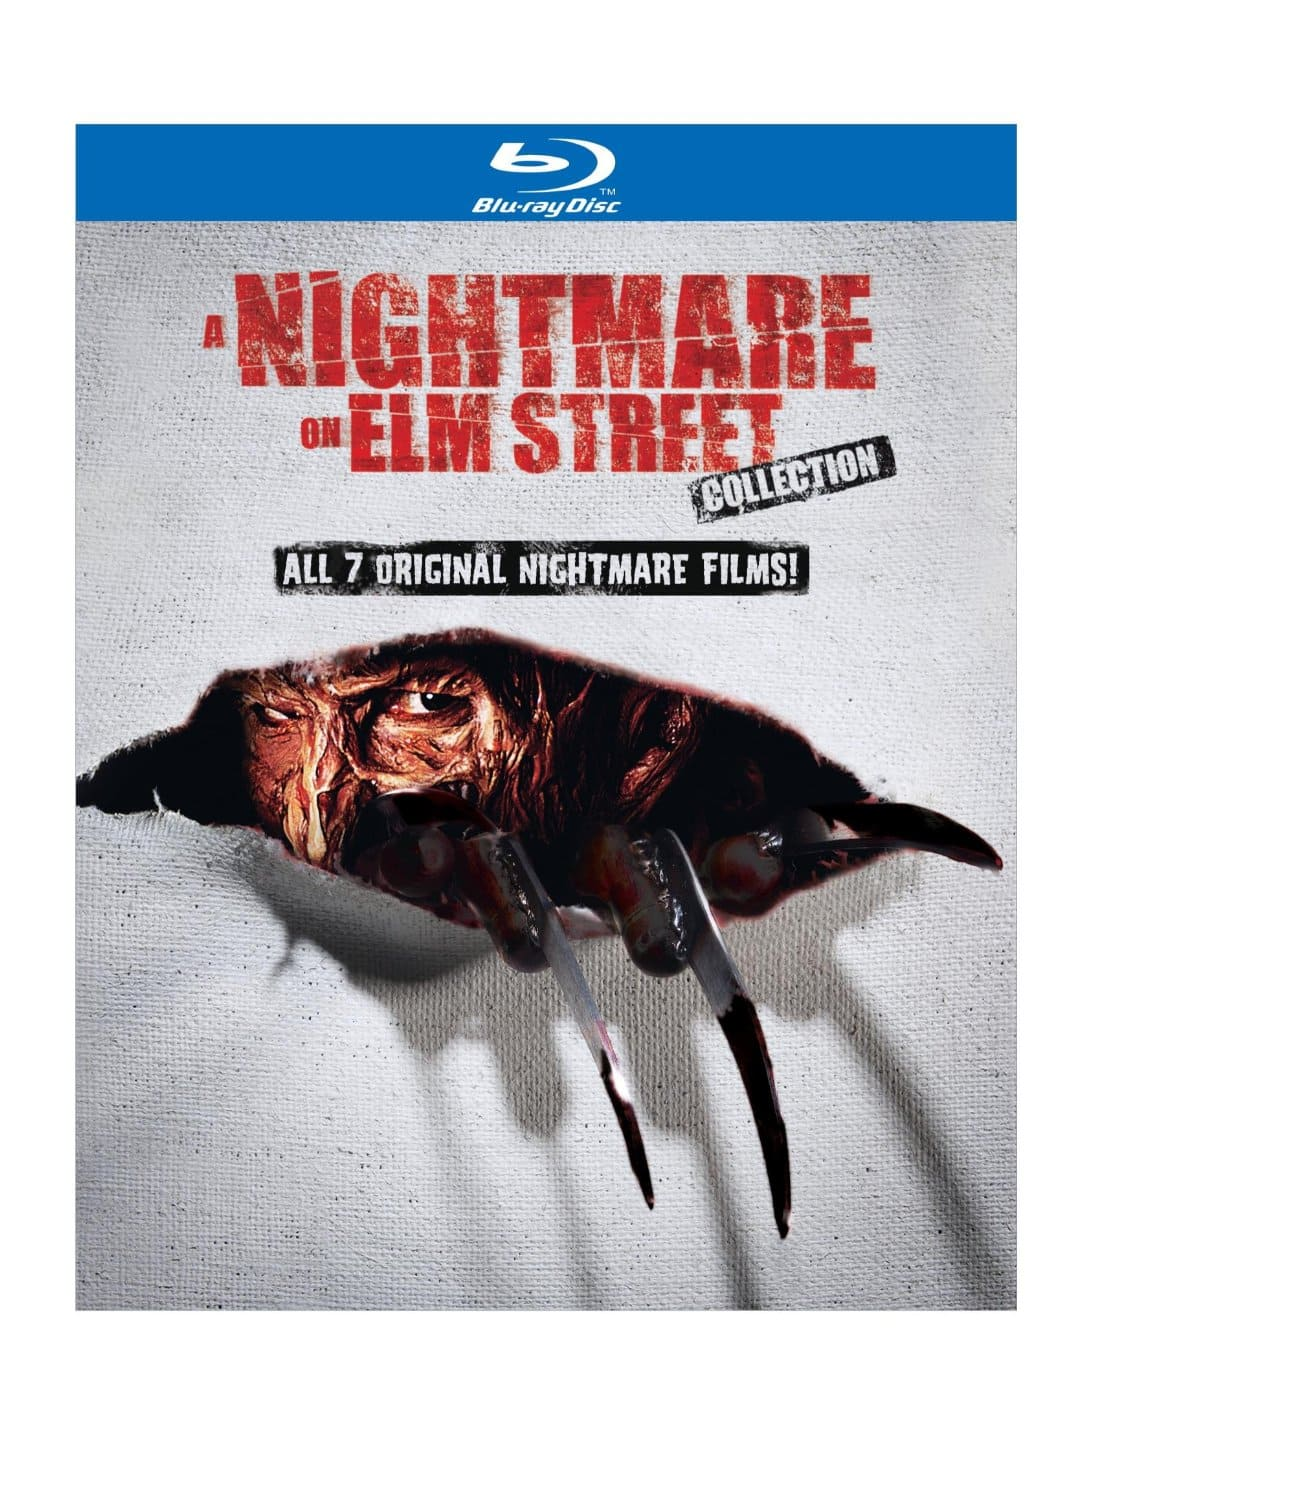 A Nightmare on Elm Street Collection (Blu-Ray)  $25